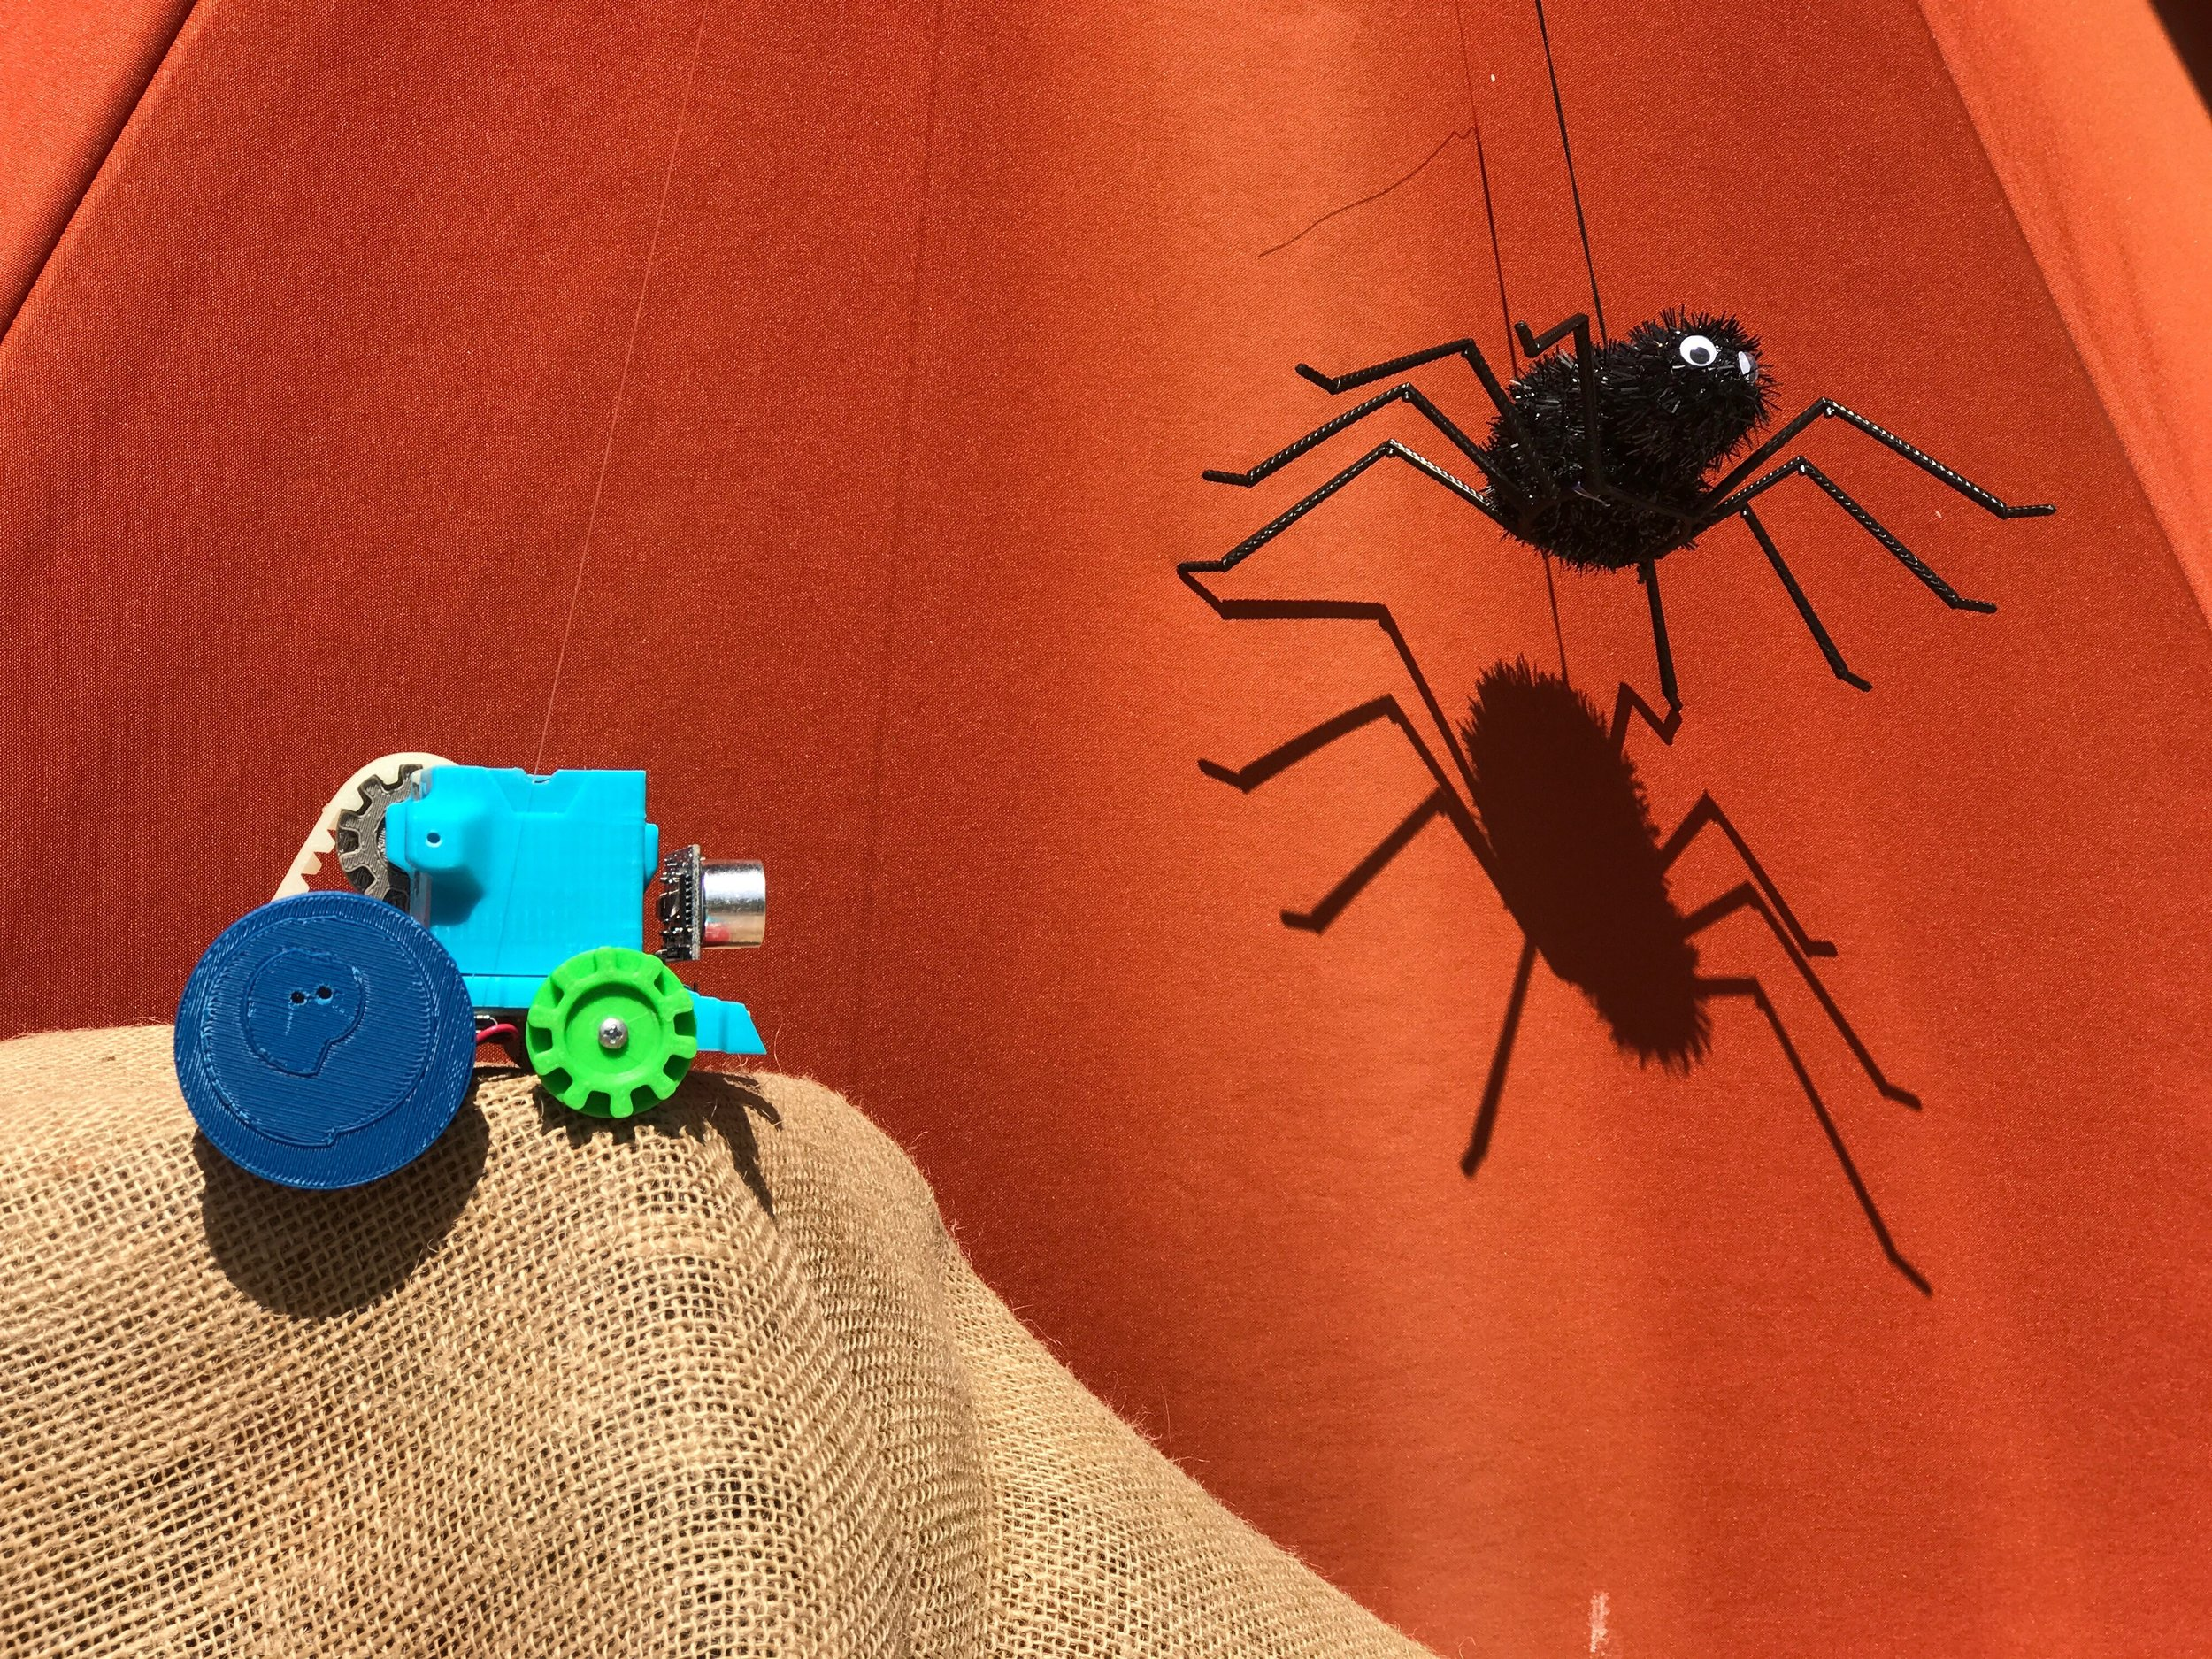 DIY TIME -This Halloween, scare Trick-or-Treaters with an automated spider that drops down when someone walks in front of your Sumo Robot!